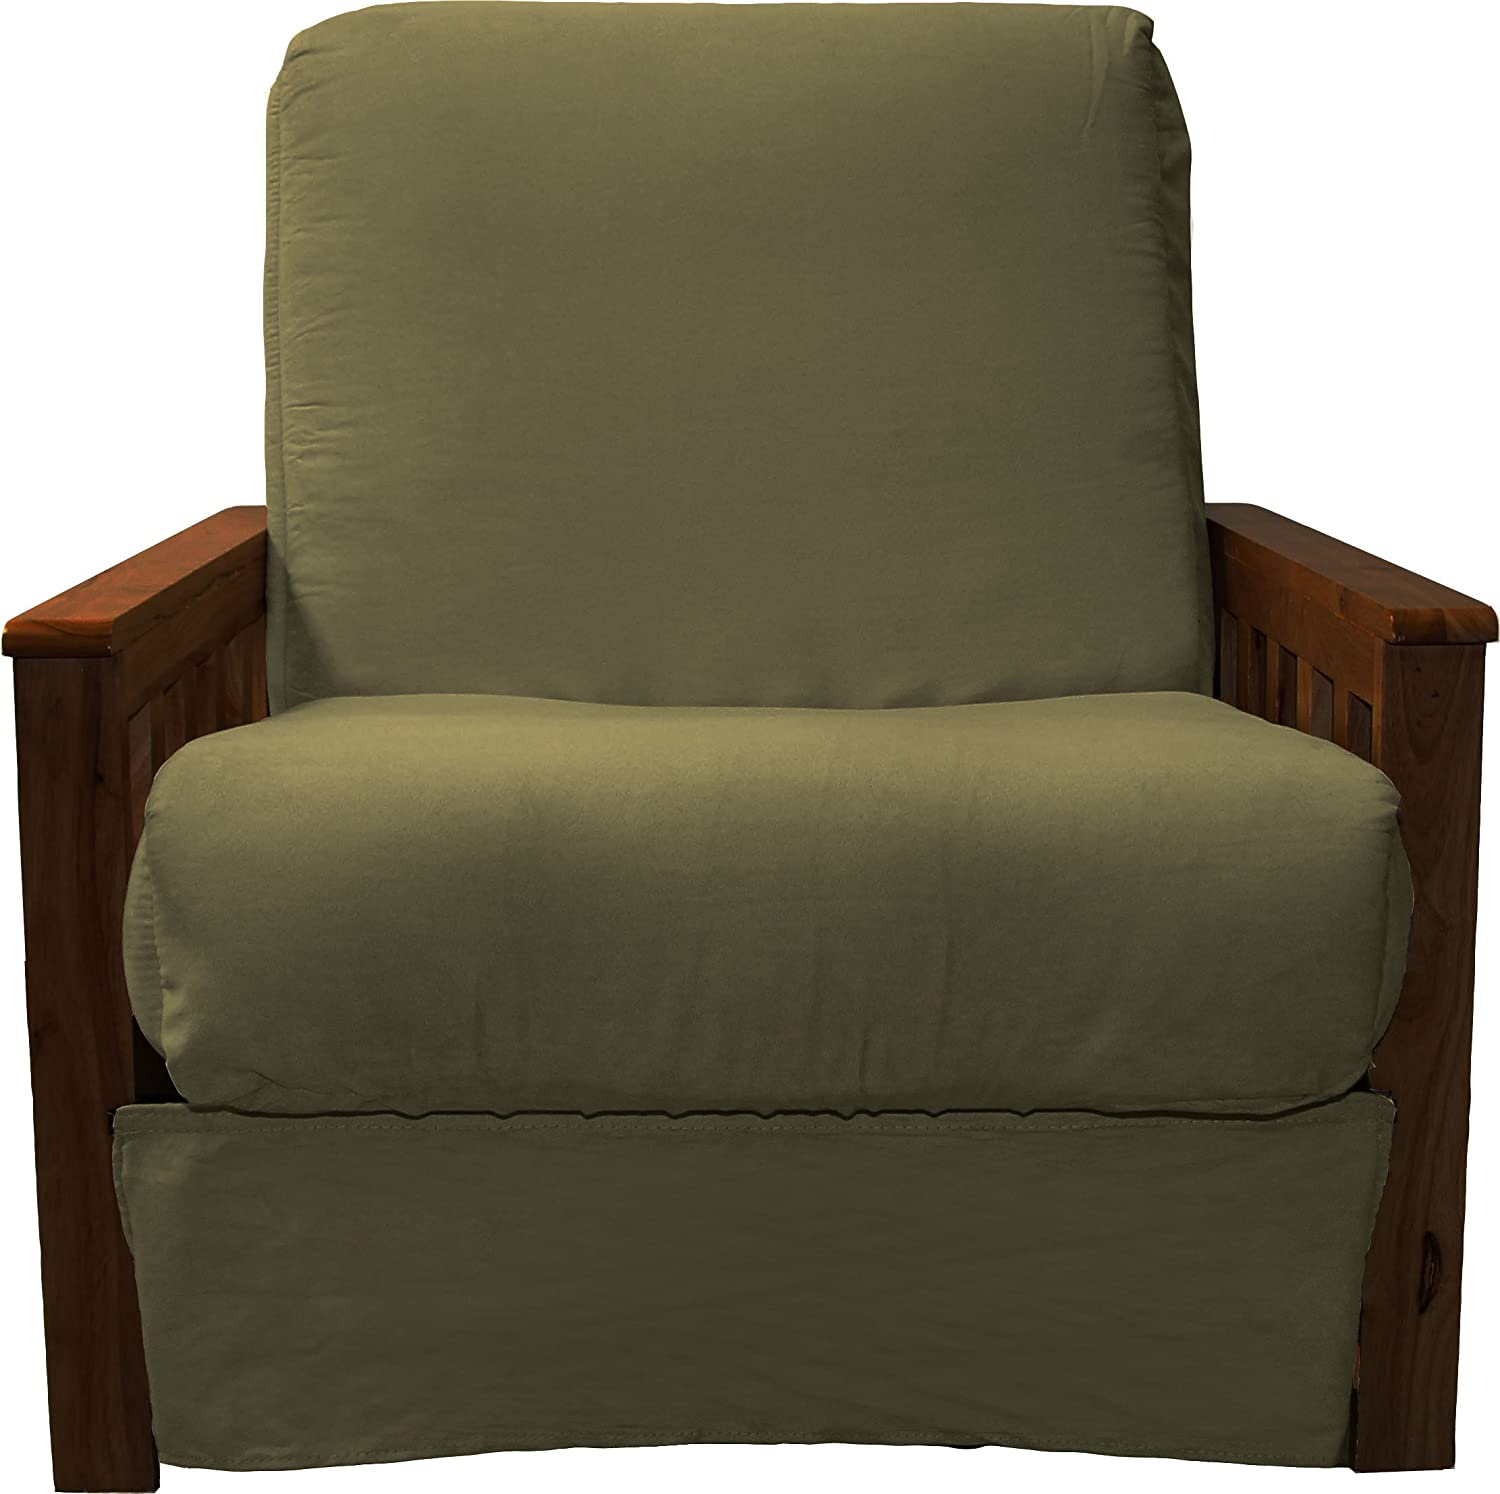 750 Pound Capacity Single Sleeper Chair